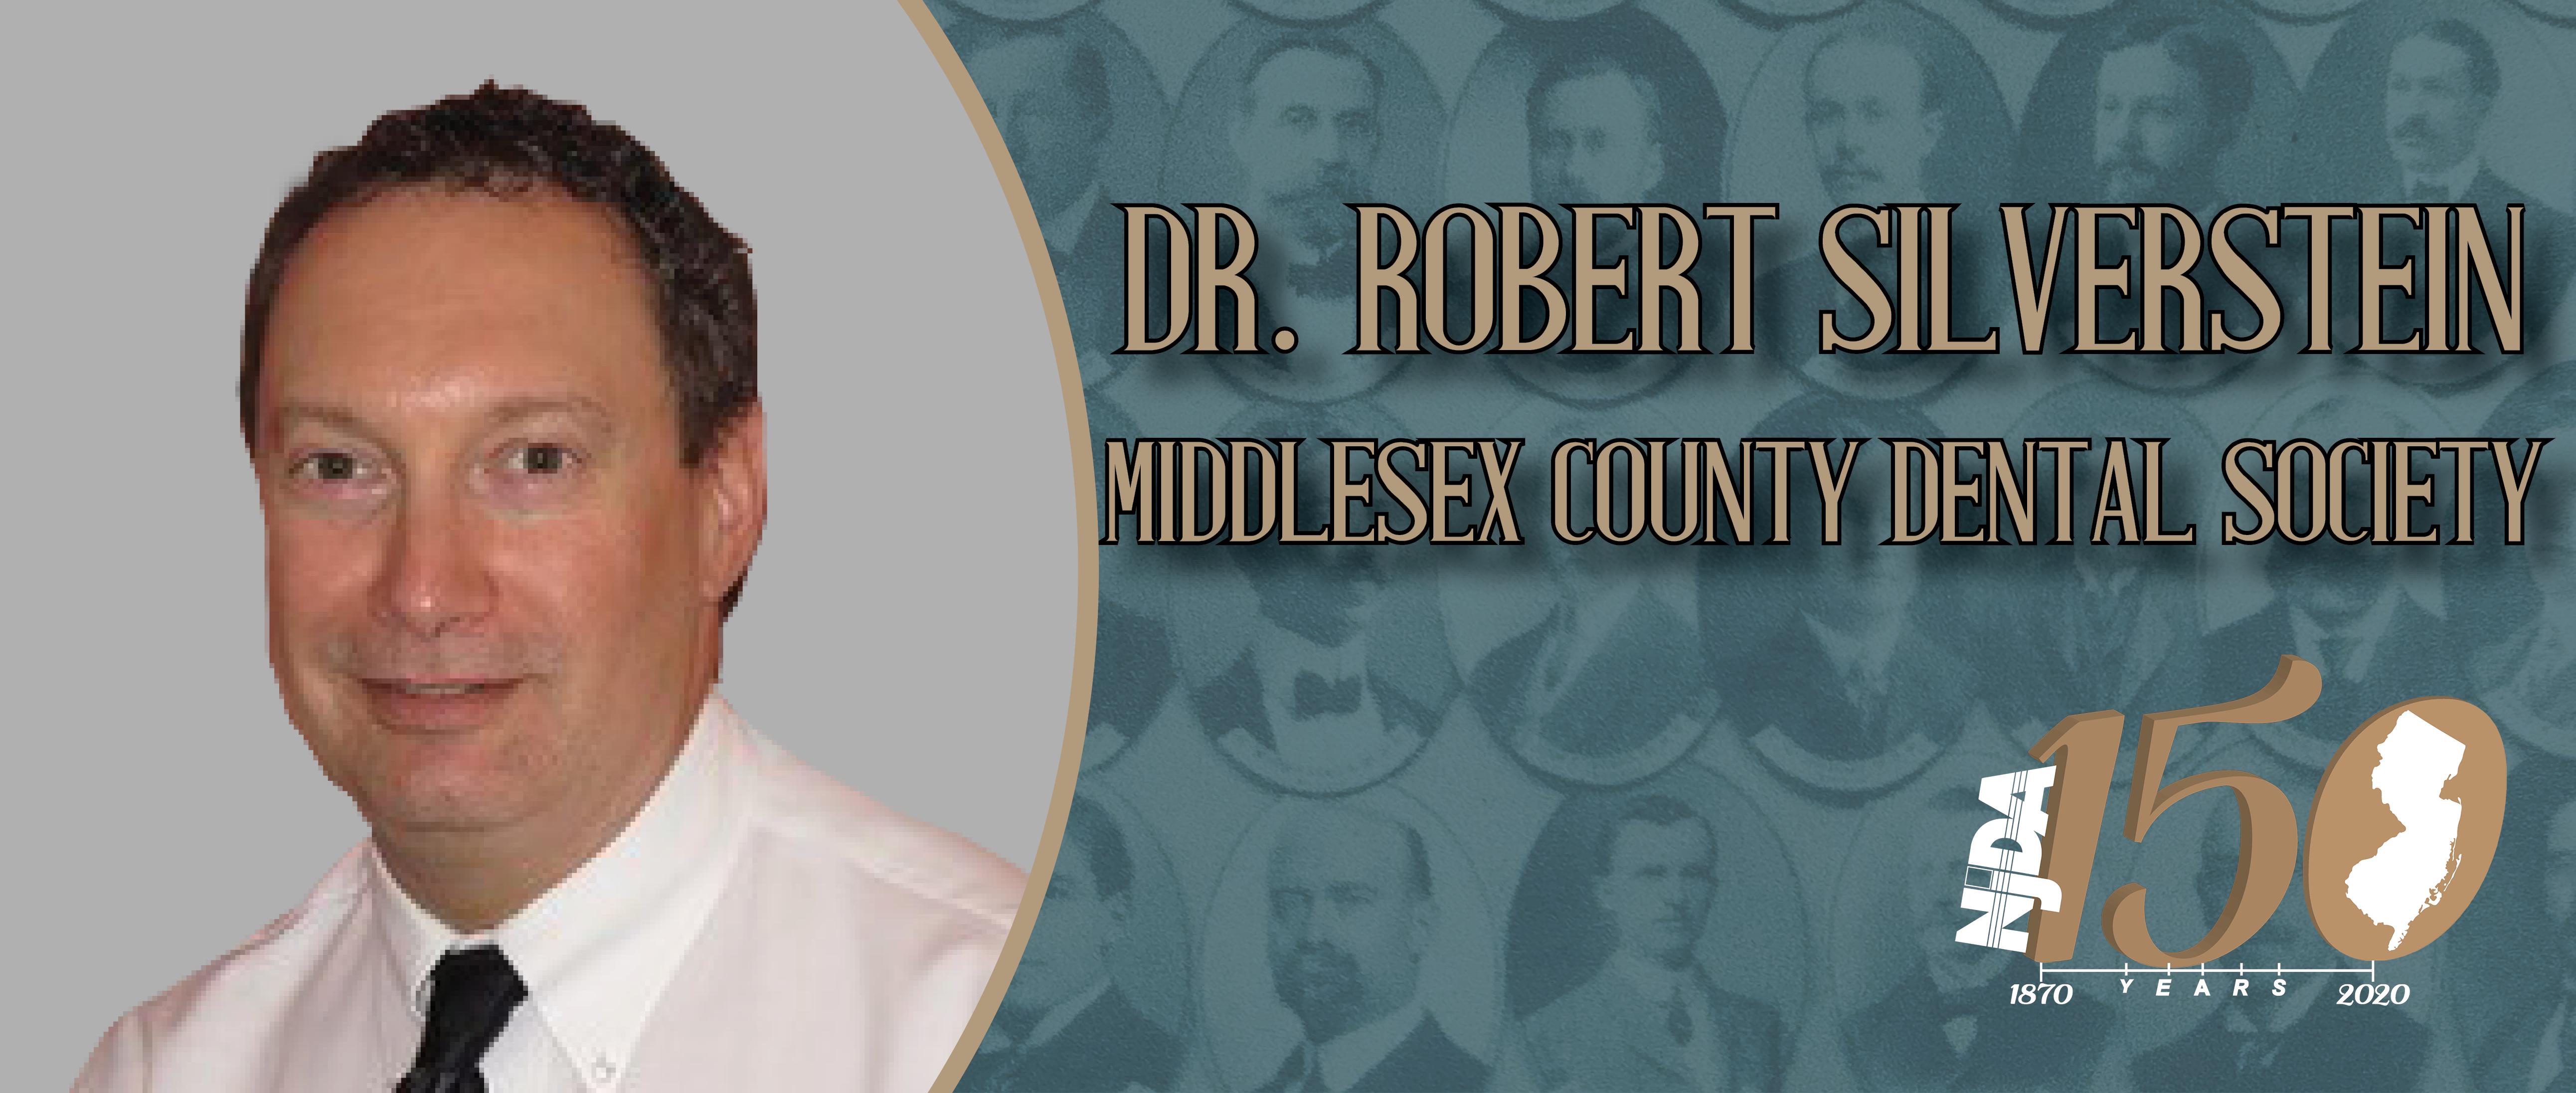 Dr. robert silverstein - 150th anniversary honoree